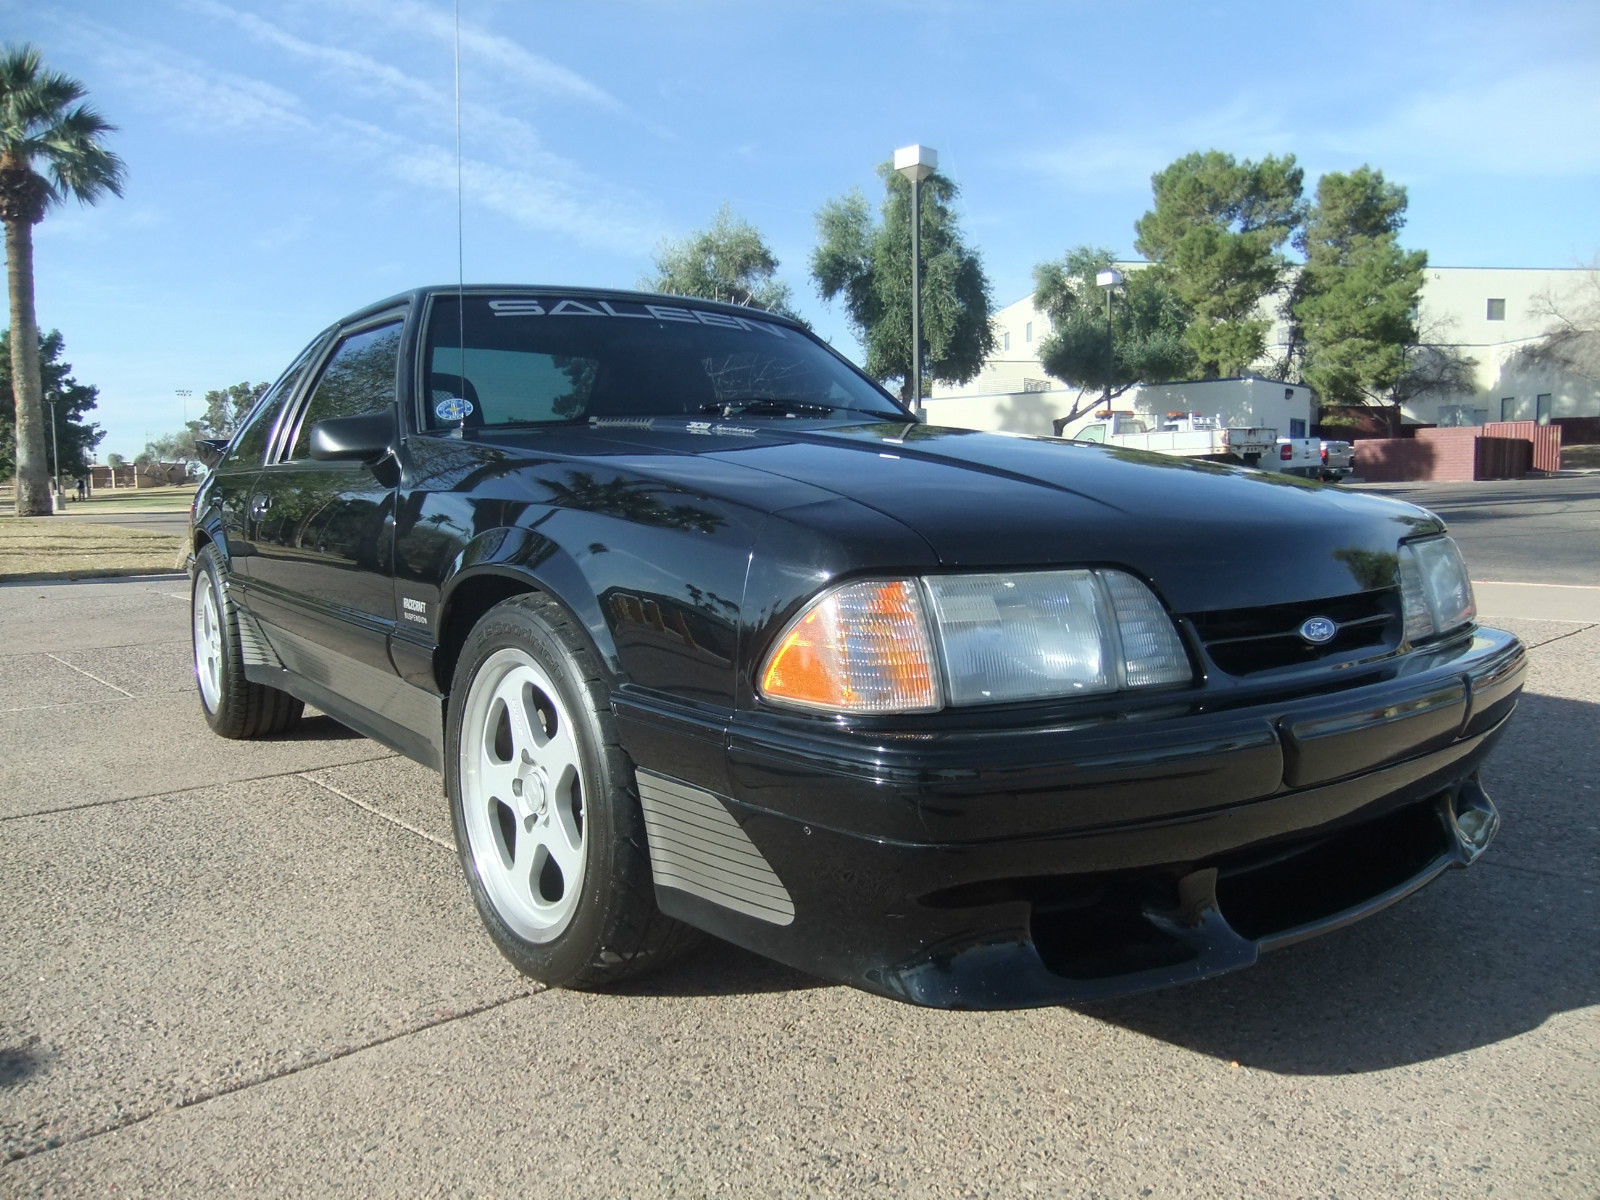 Rare 1992 supercharged 92 0021 offered on ebay saleen owners and